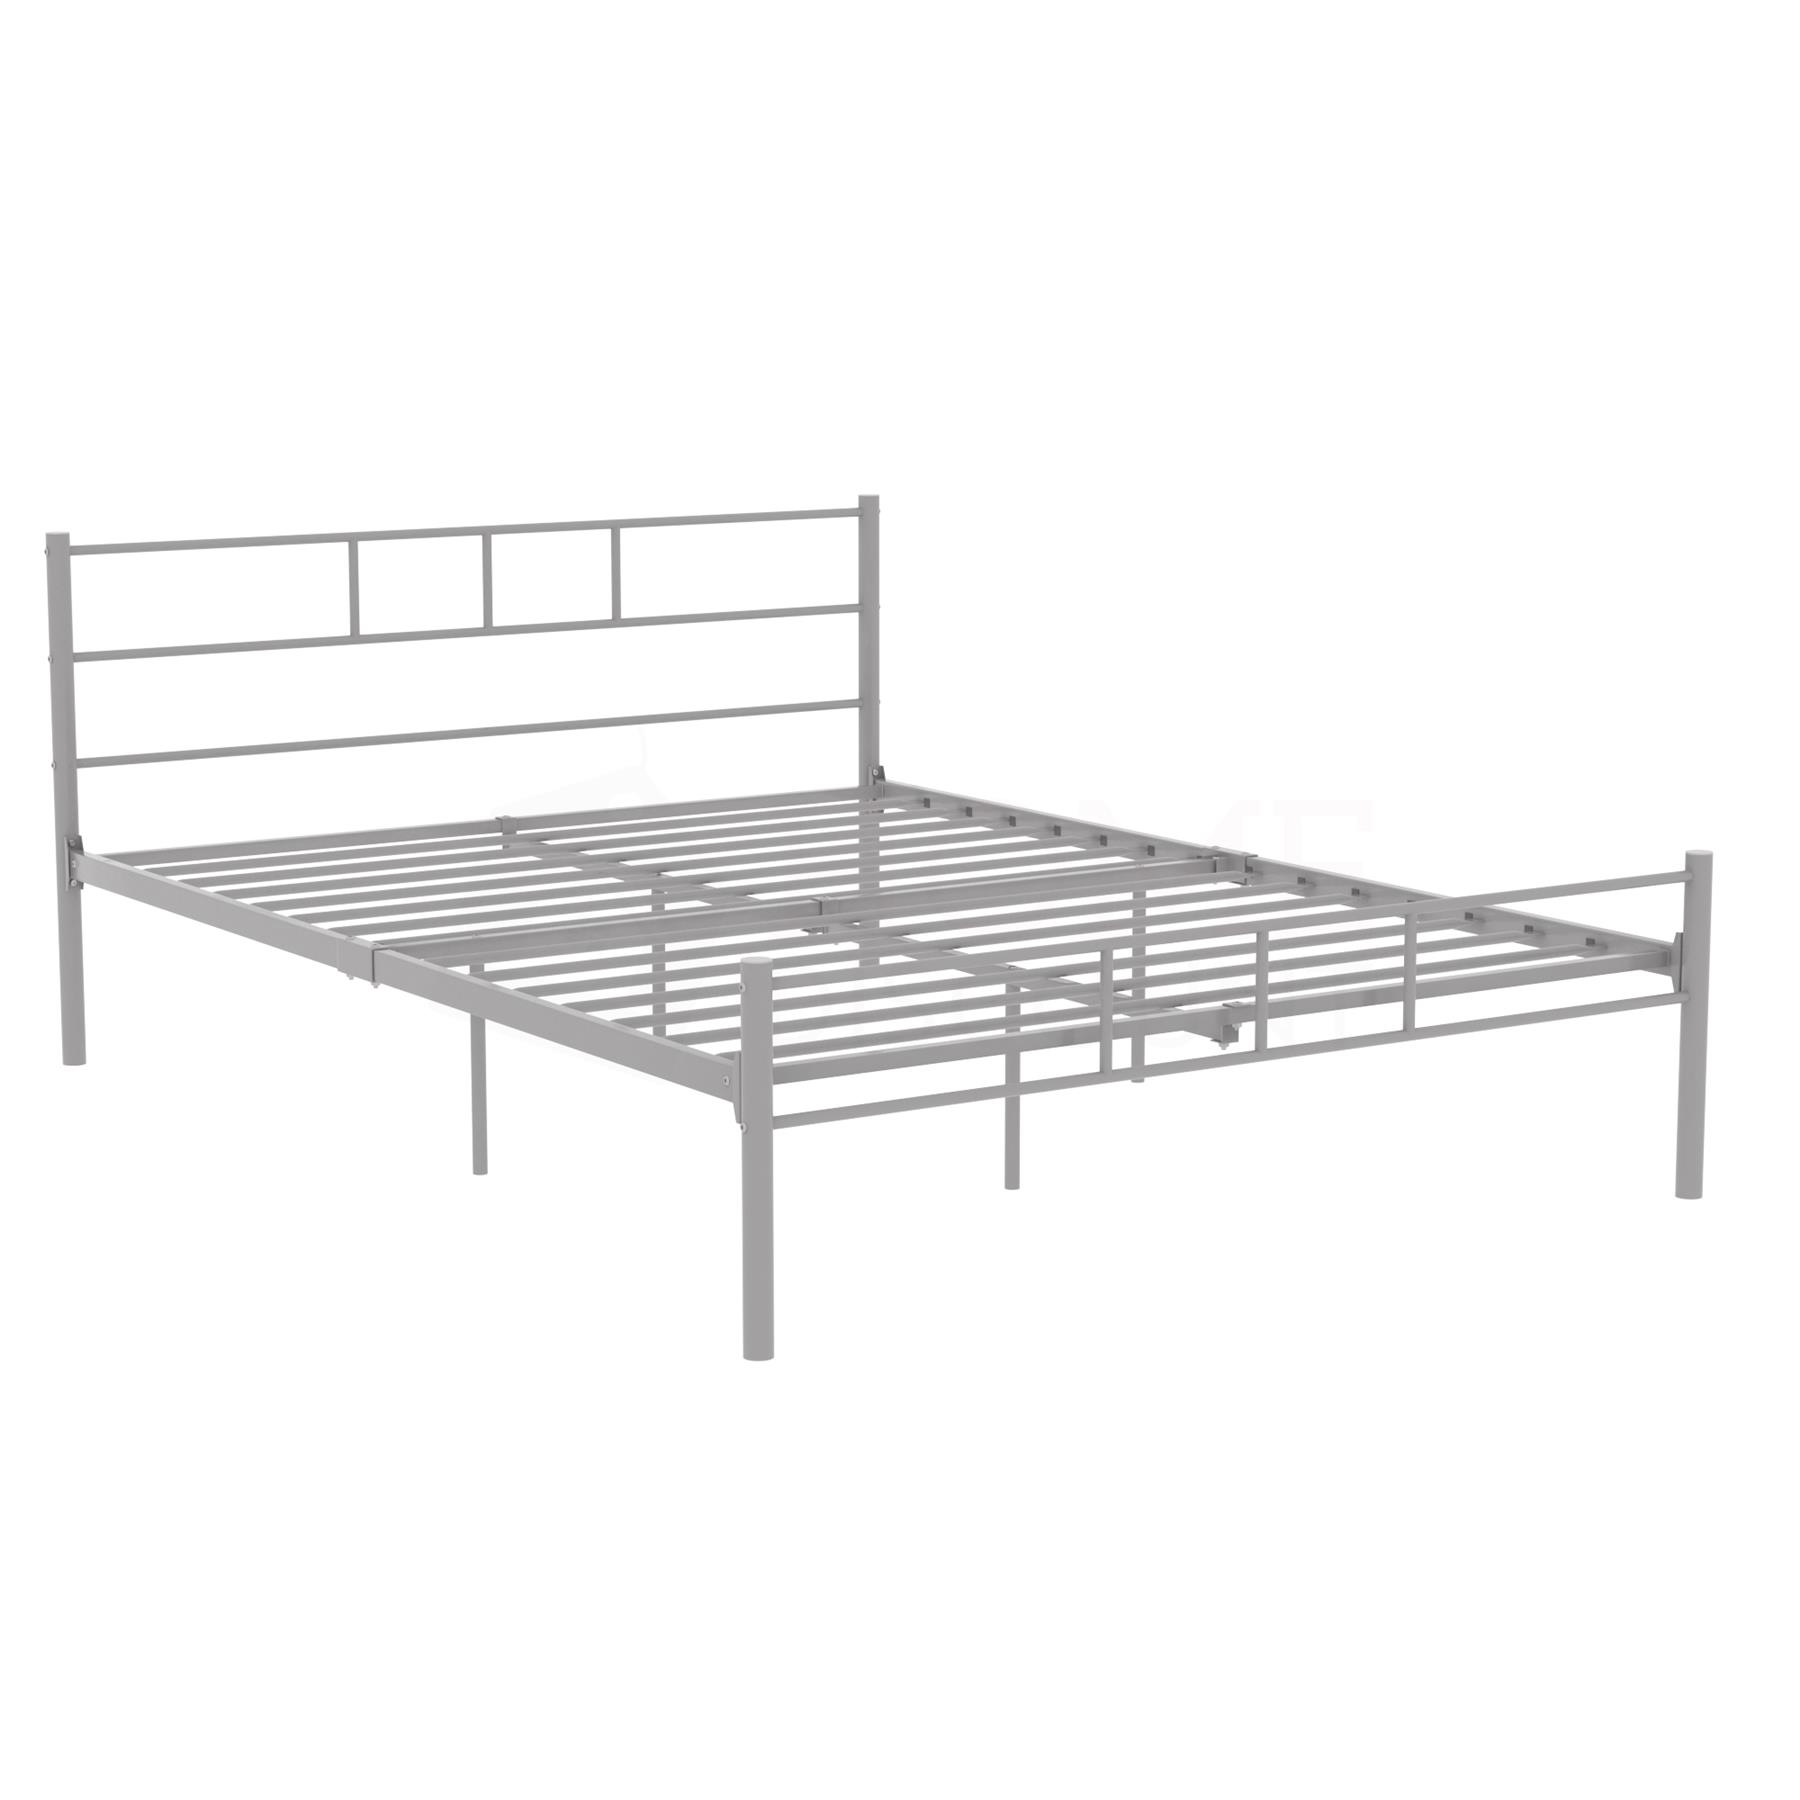 Dorset-Double-King-Size-Single-Bed-Metal-Steel-Frame-4ft6-5ft-Bedroom-Furniture thumbnail 44